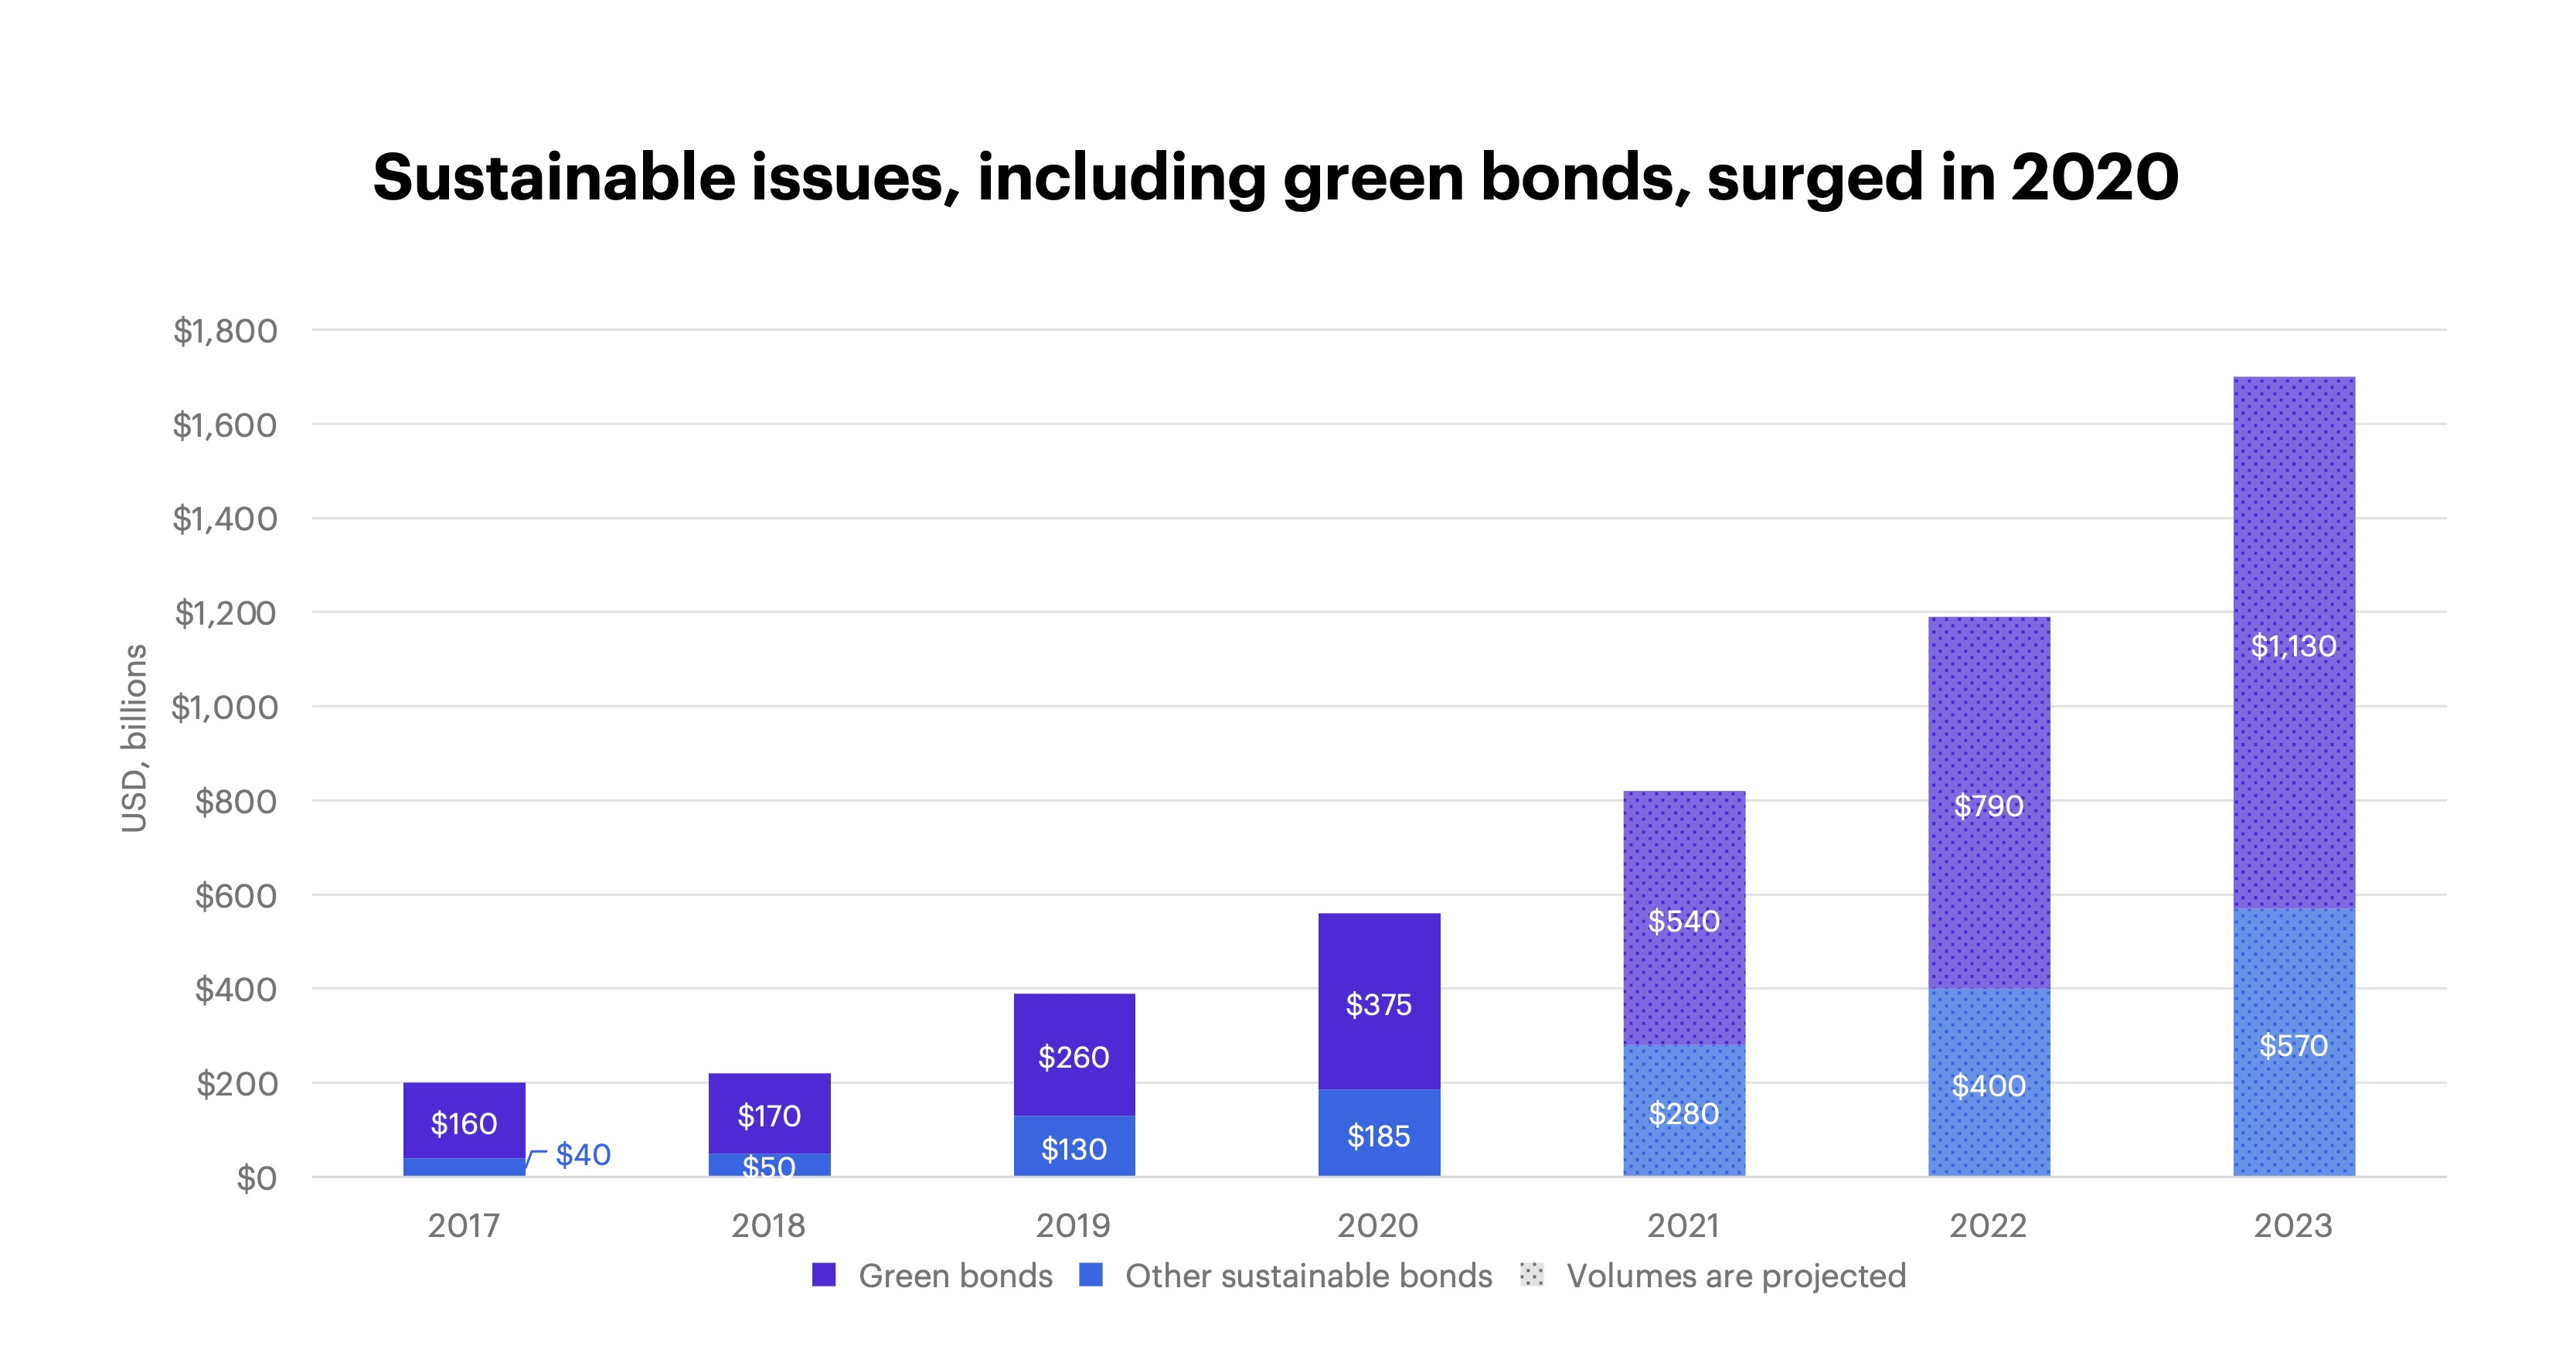 Sustainable issues, including green bonds, surged in 2020